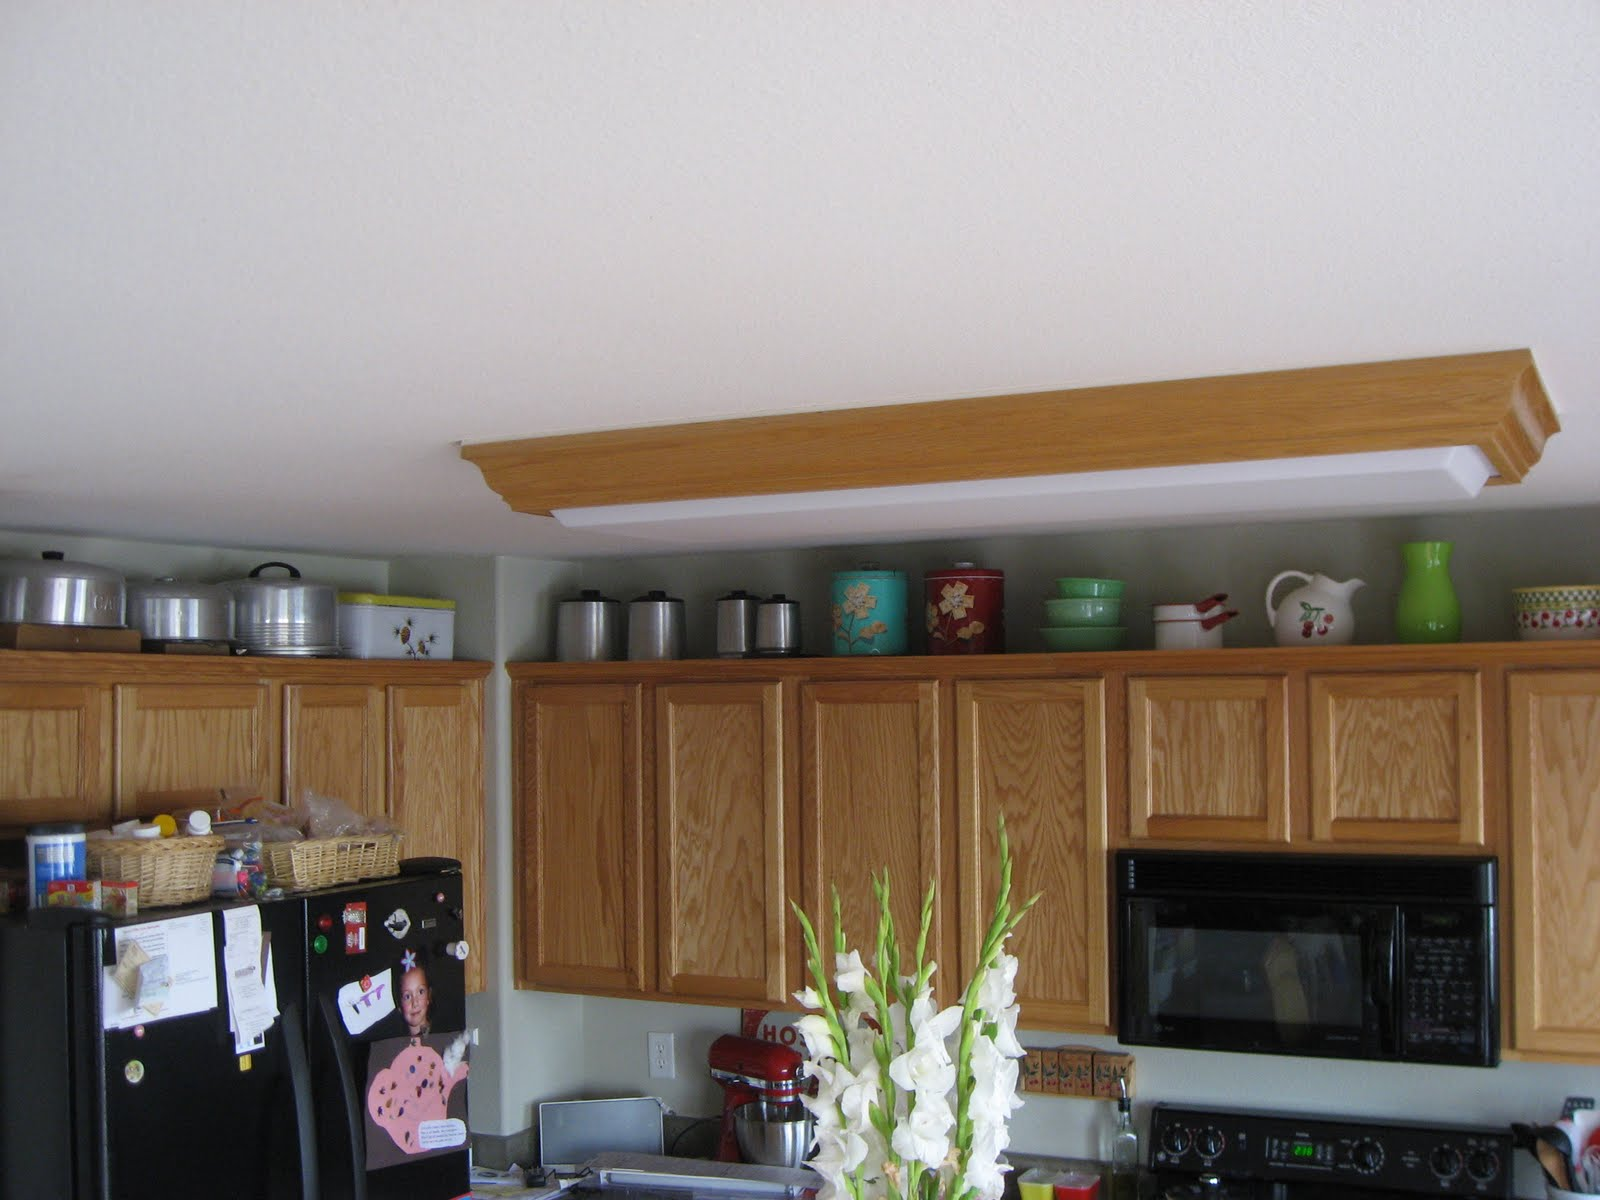 Decorating kitchen cabinets afreakatheart How to decorate top of cabinets